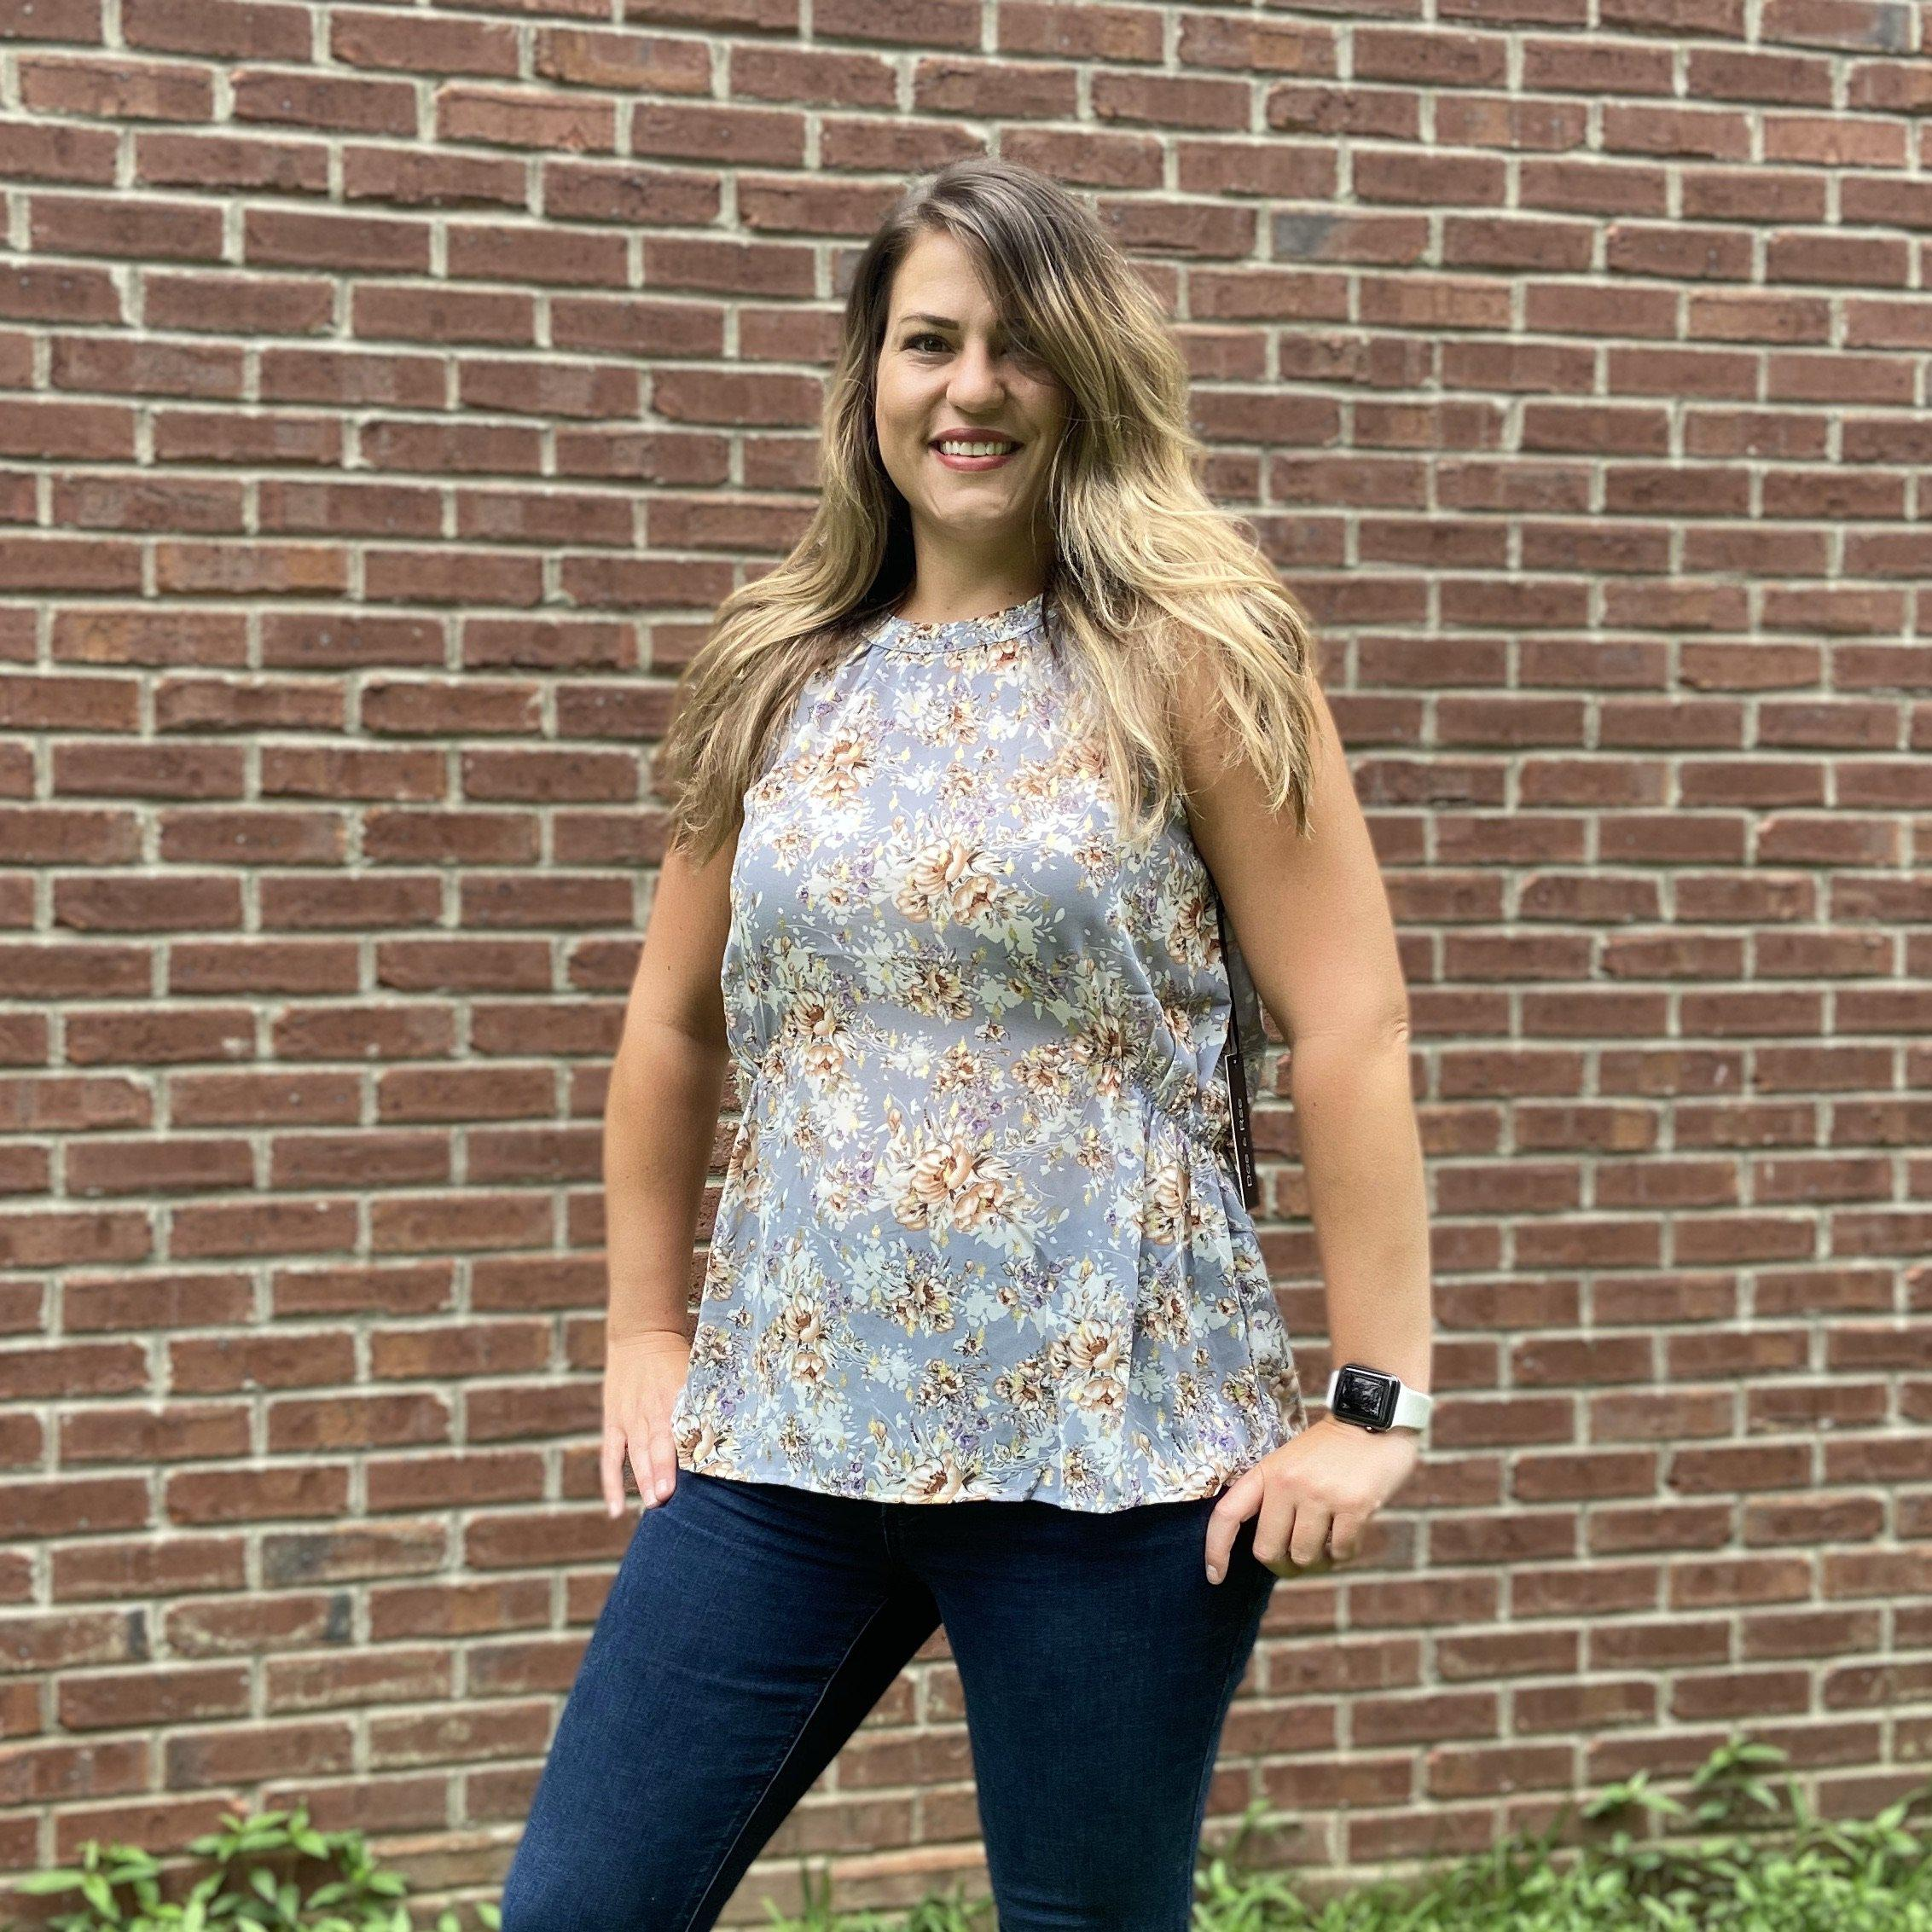 T-157 Sheer gray floral Top